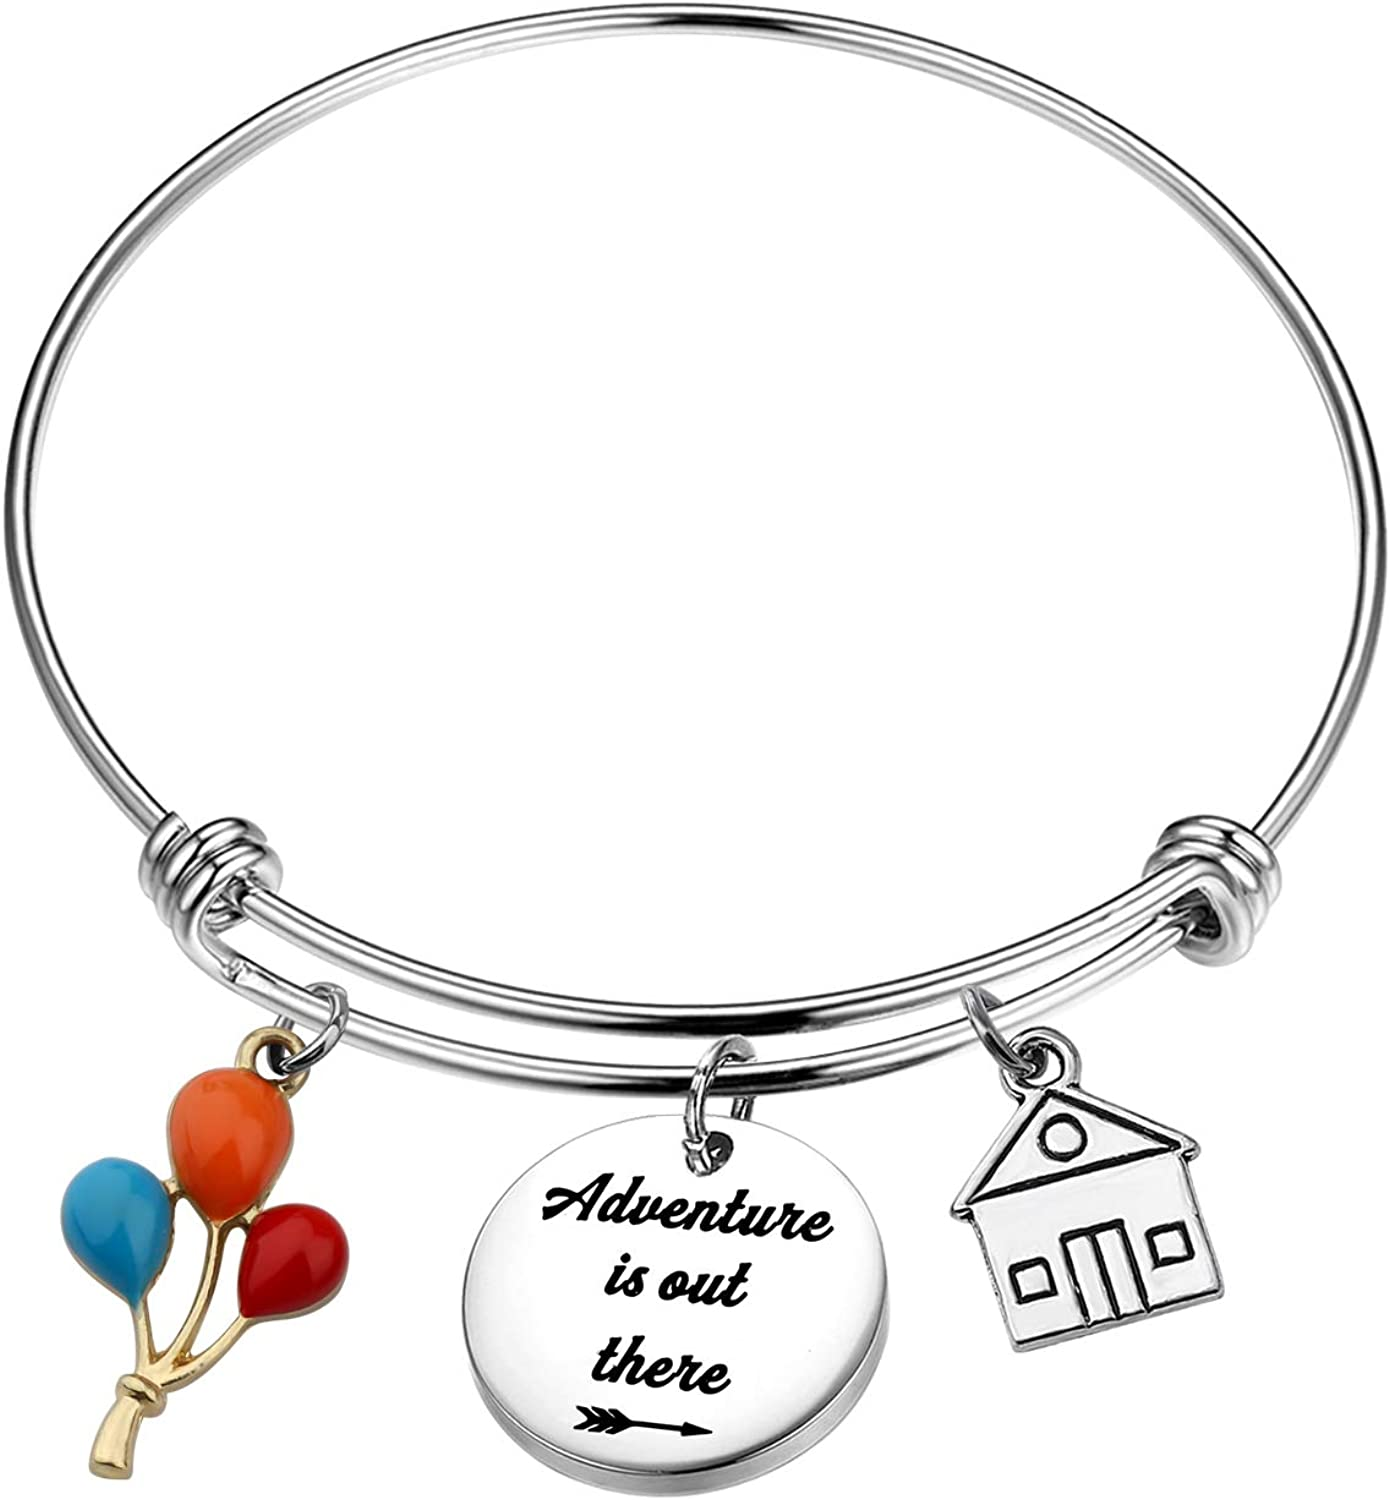 Gzrlyf Adventure is Out There Bracelet Travel Bracelet Inspirational Jewelry Wanderlust Gifts